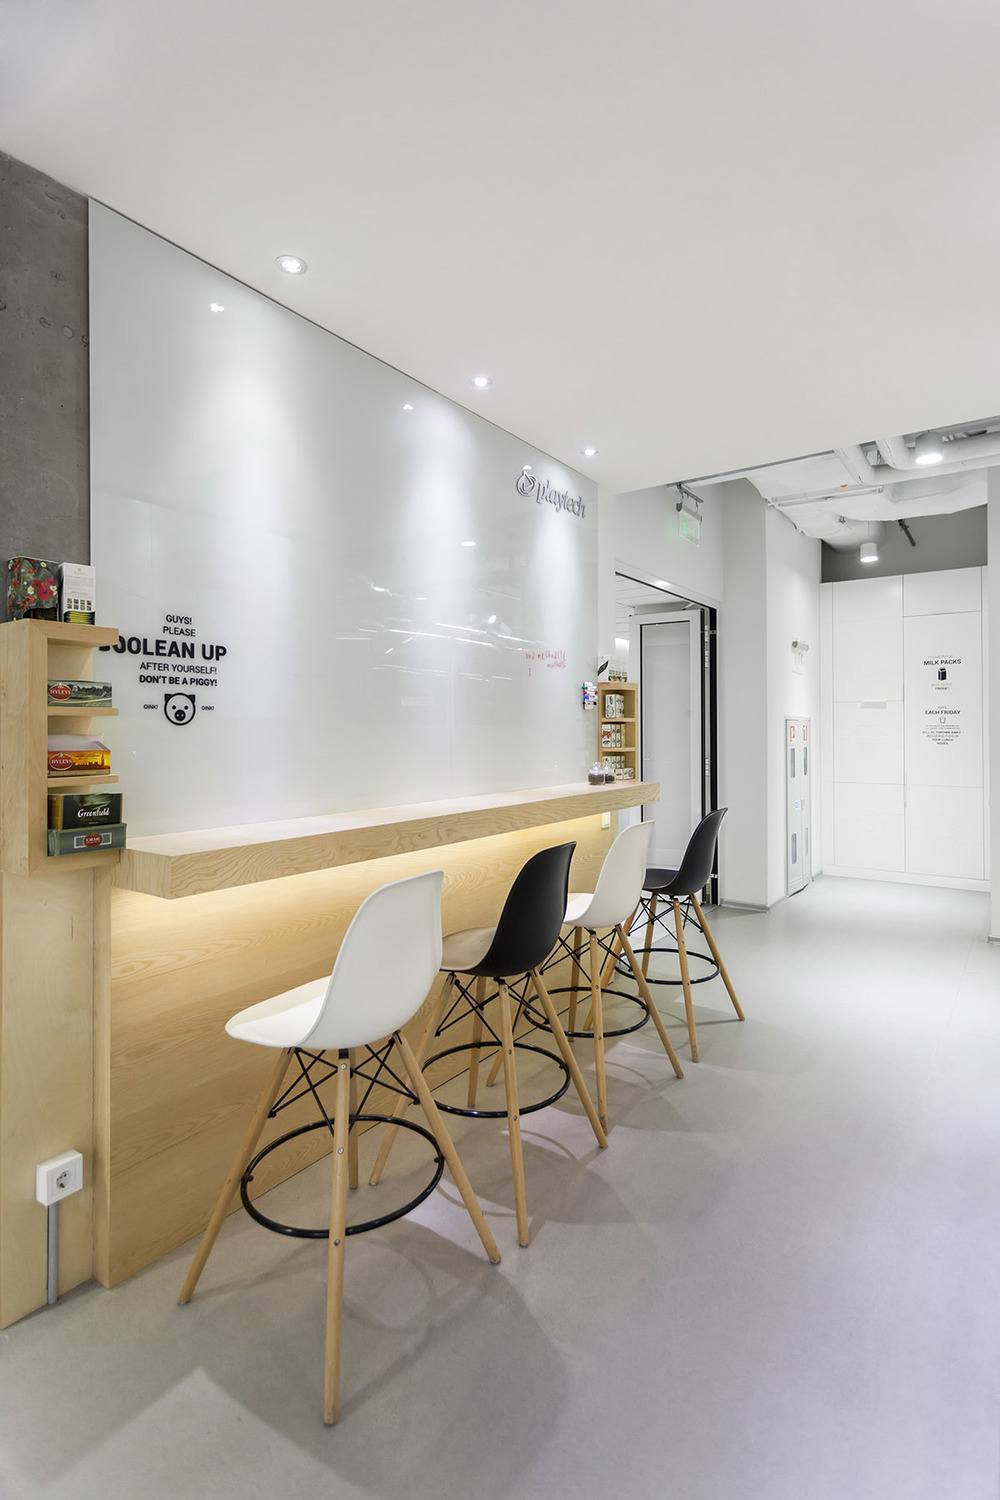 Interior Design Space: A Look Inside Playtech's Stylish Kiev Office